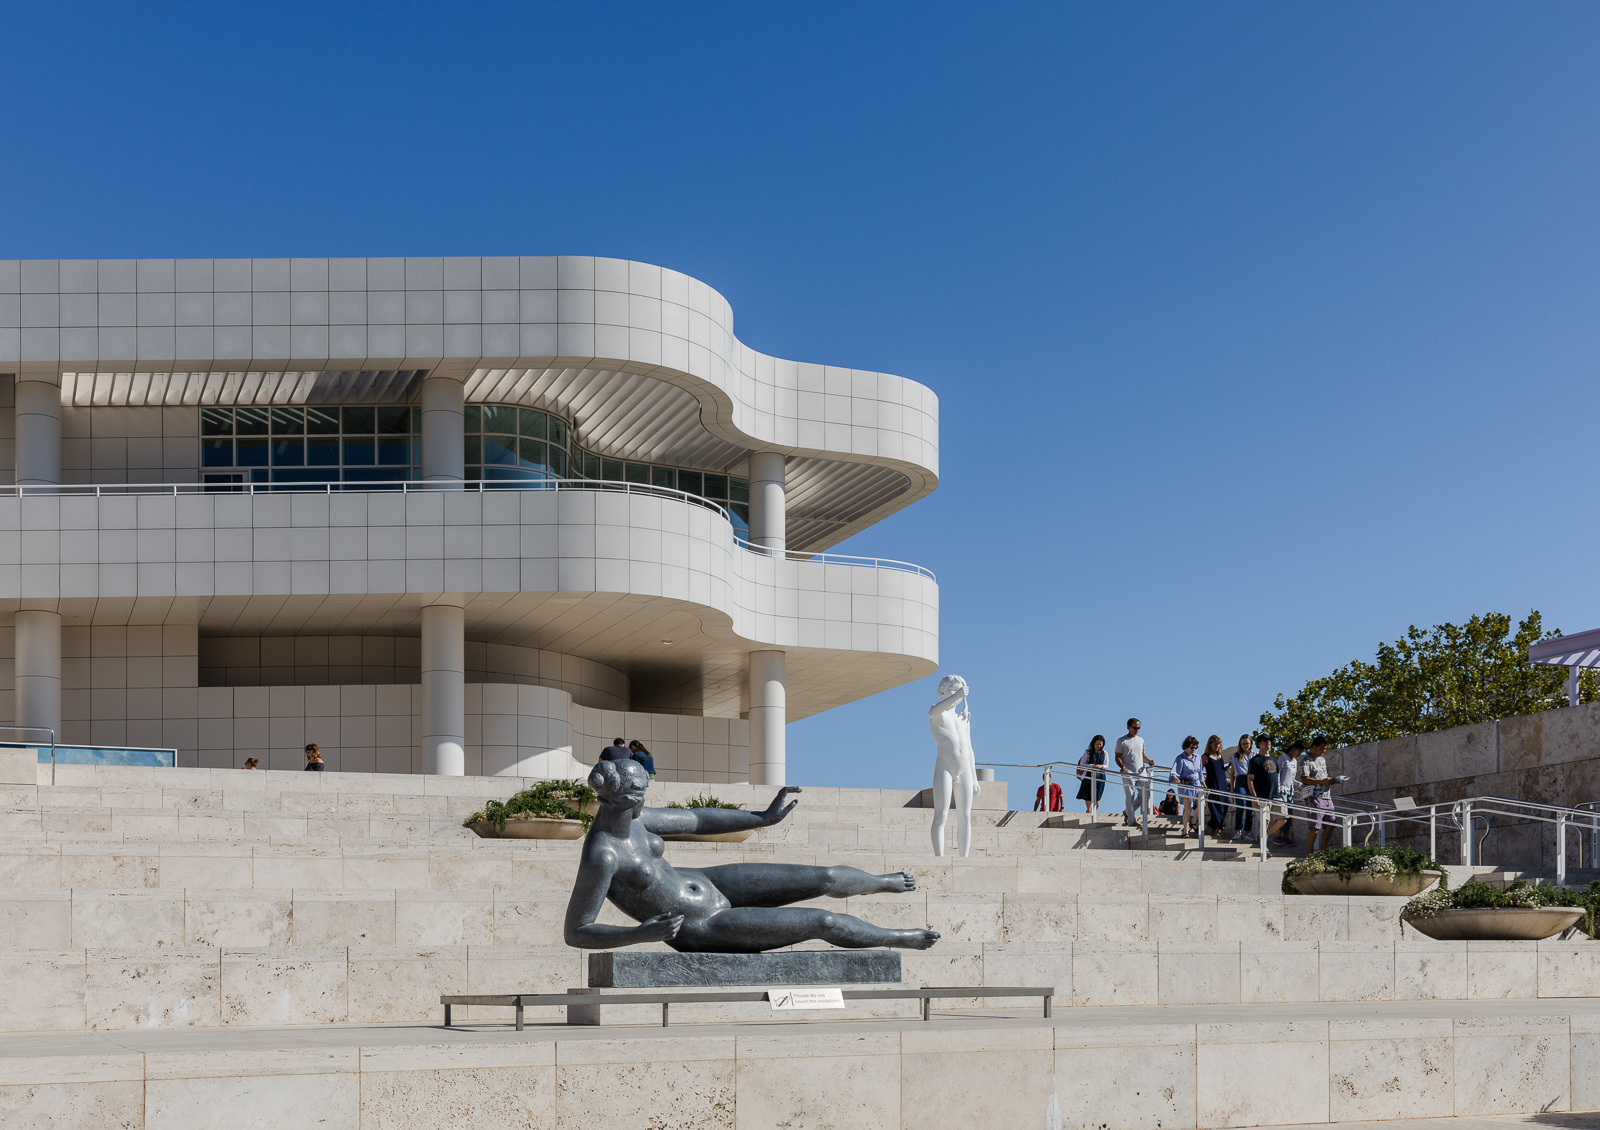 Sculptures in front of the Getty Center in Los Angeles